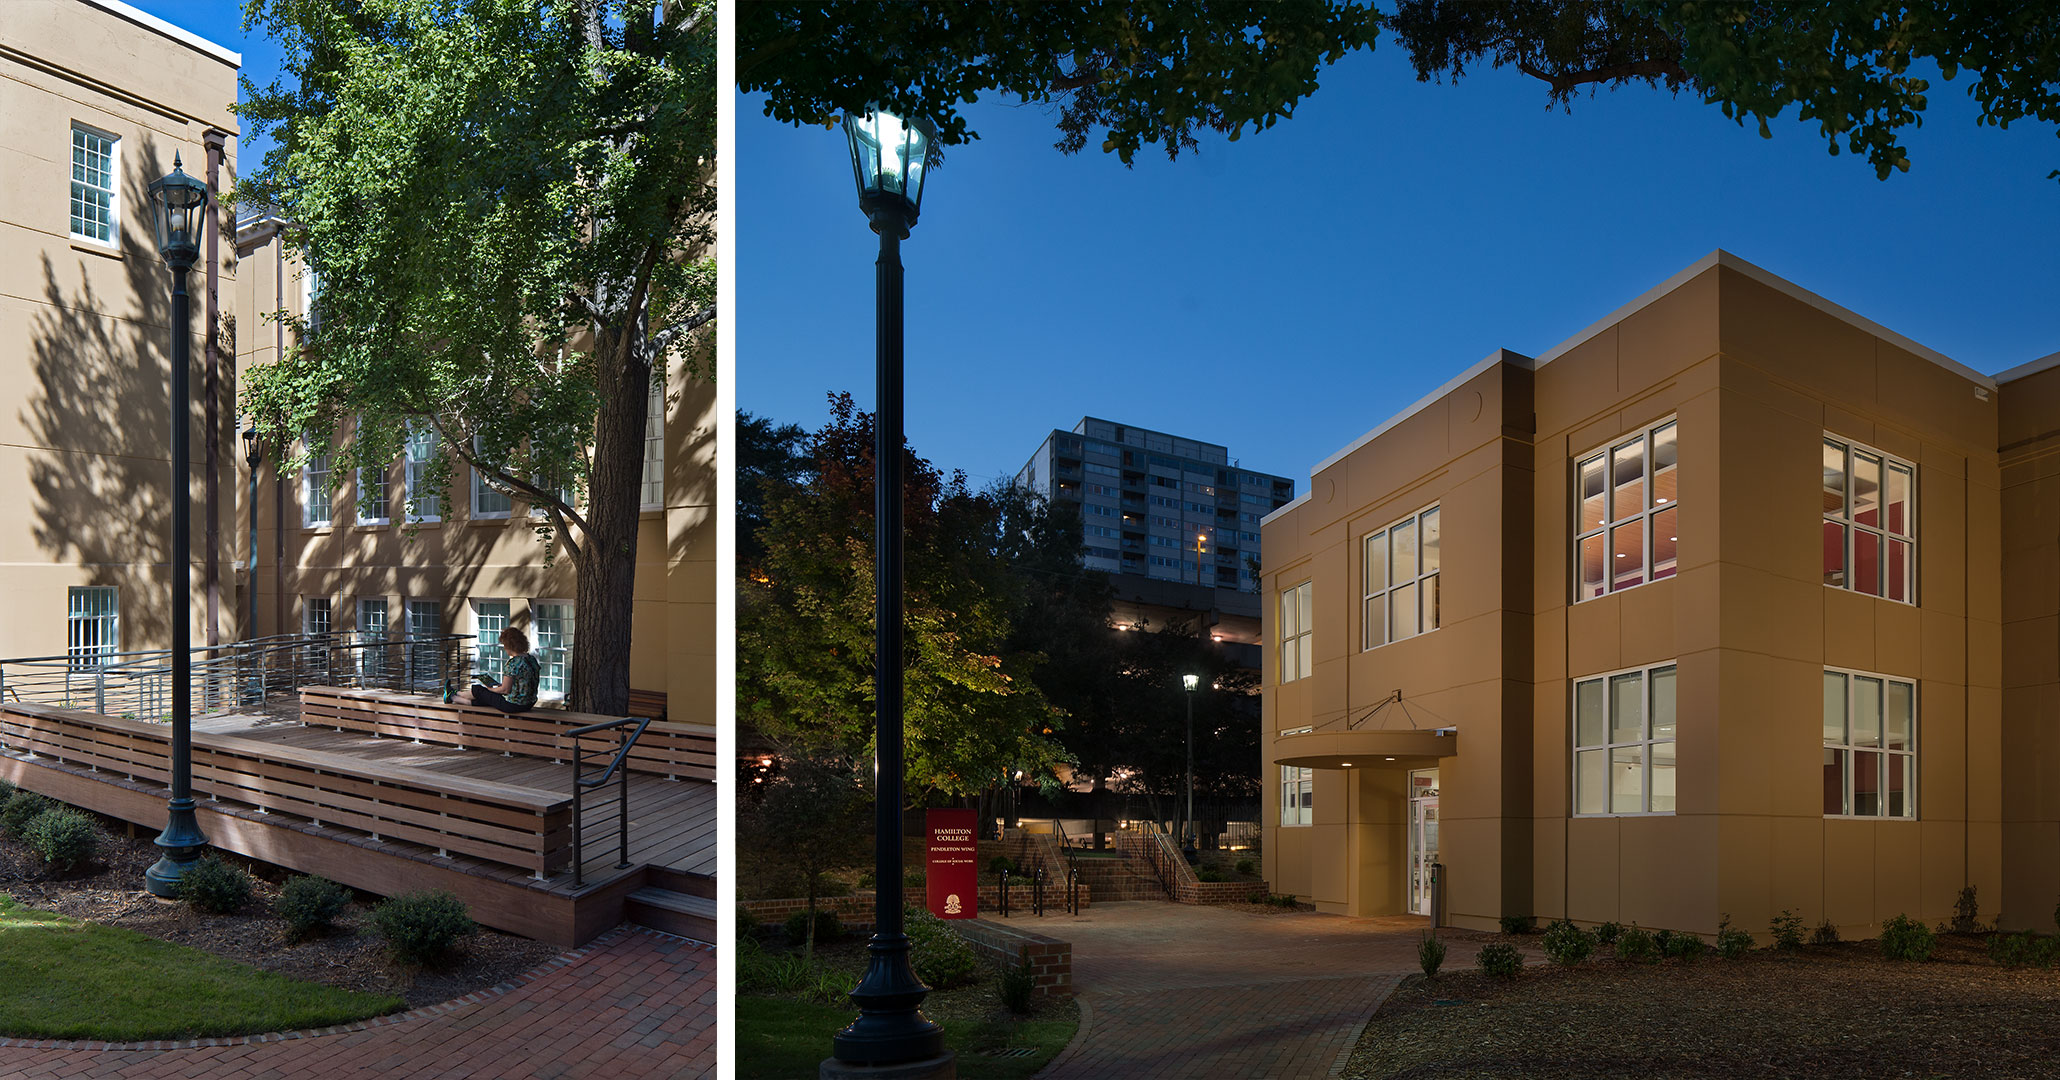 UofSC hired Boudreaux architects to provide historic preservation services at Hamilton College in Columbia, SC.